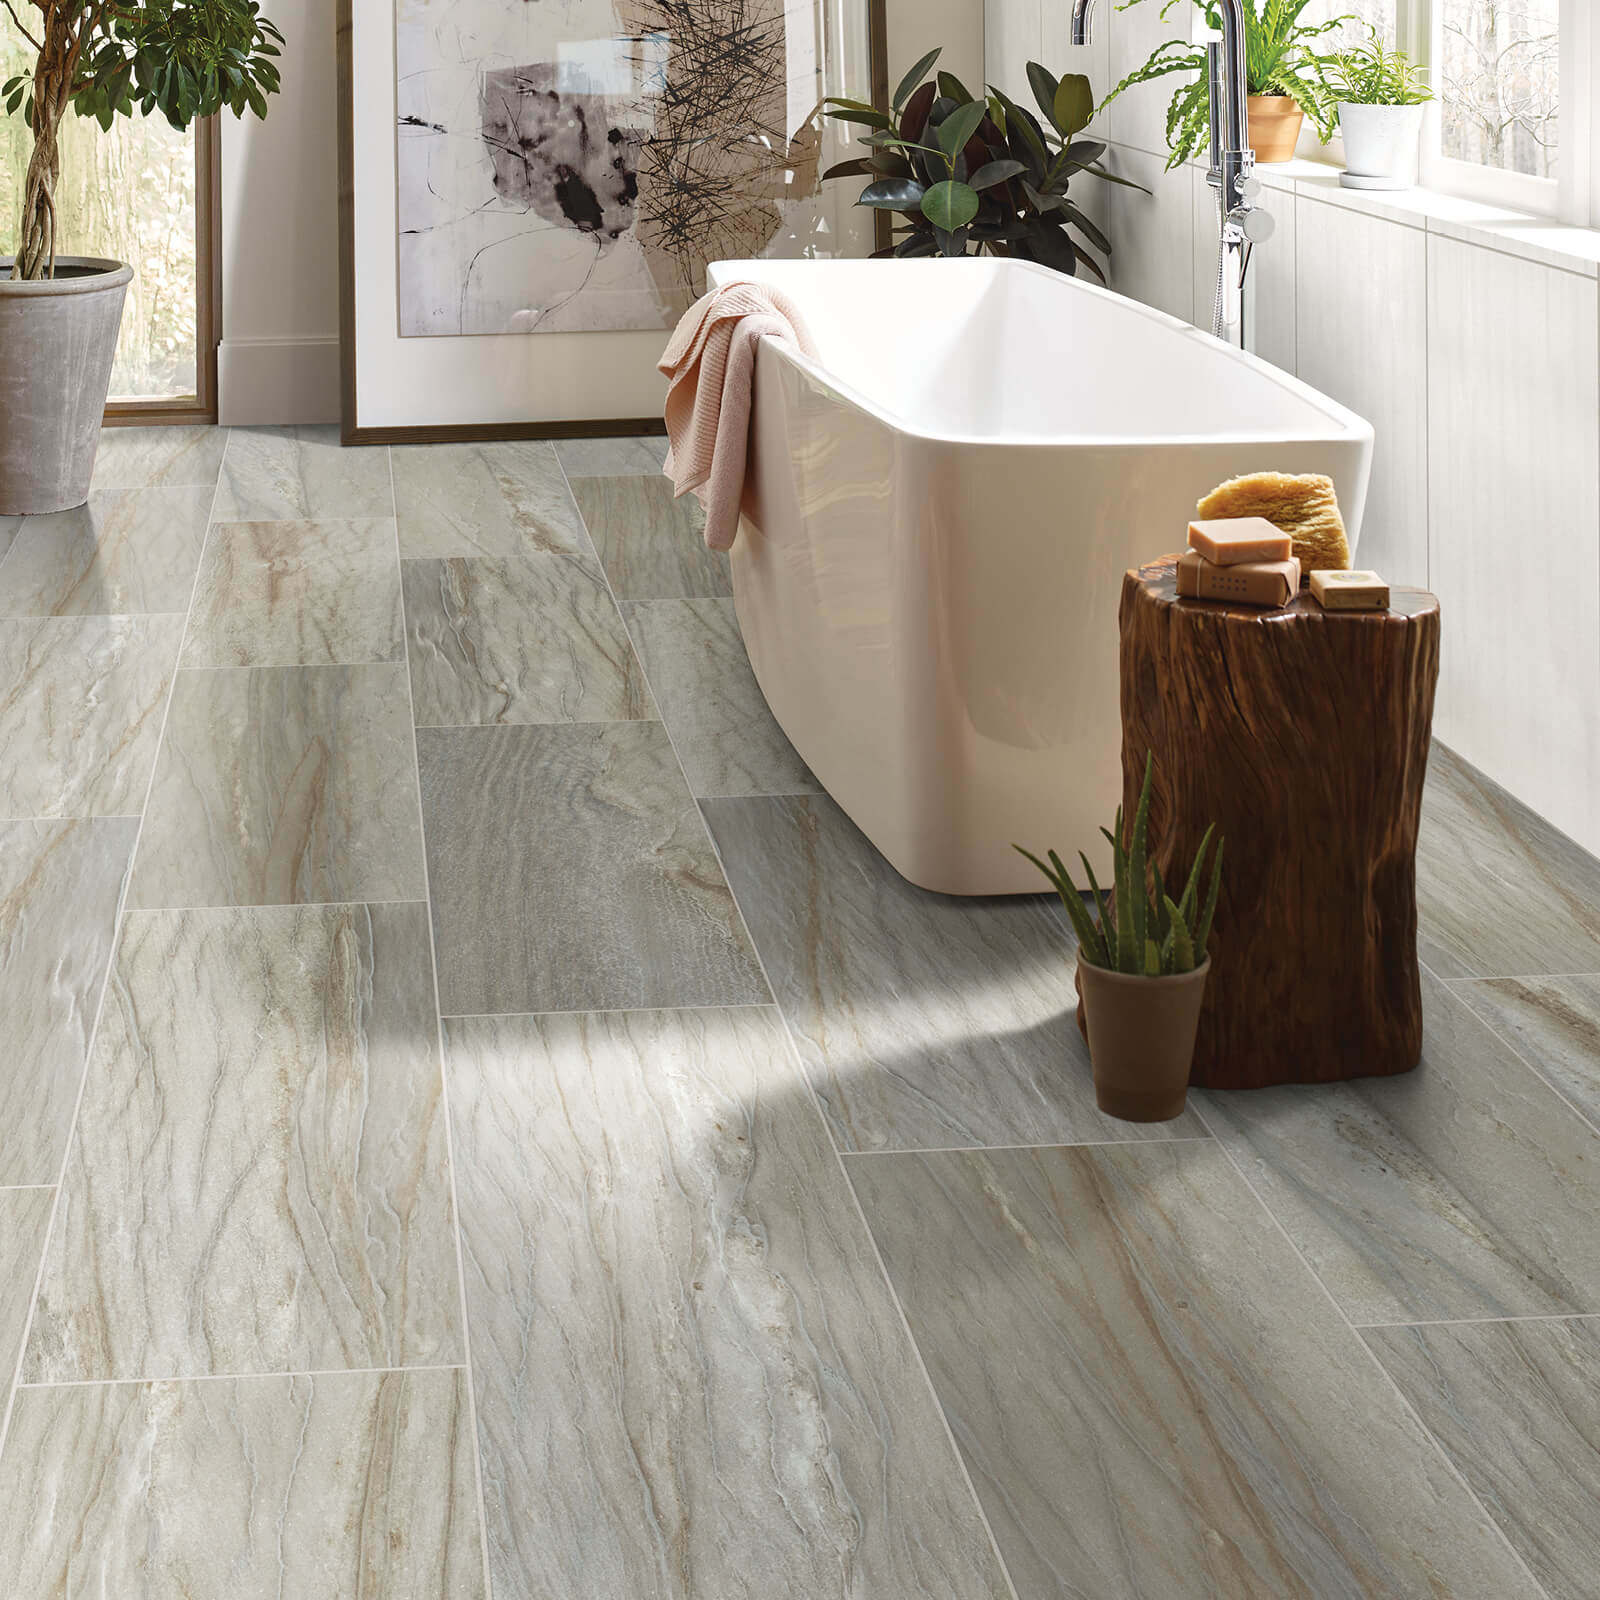 Sanctuary bathroom | Flooring 101